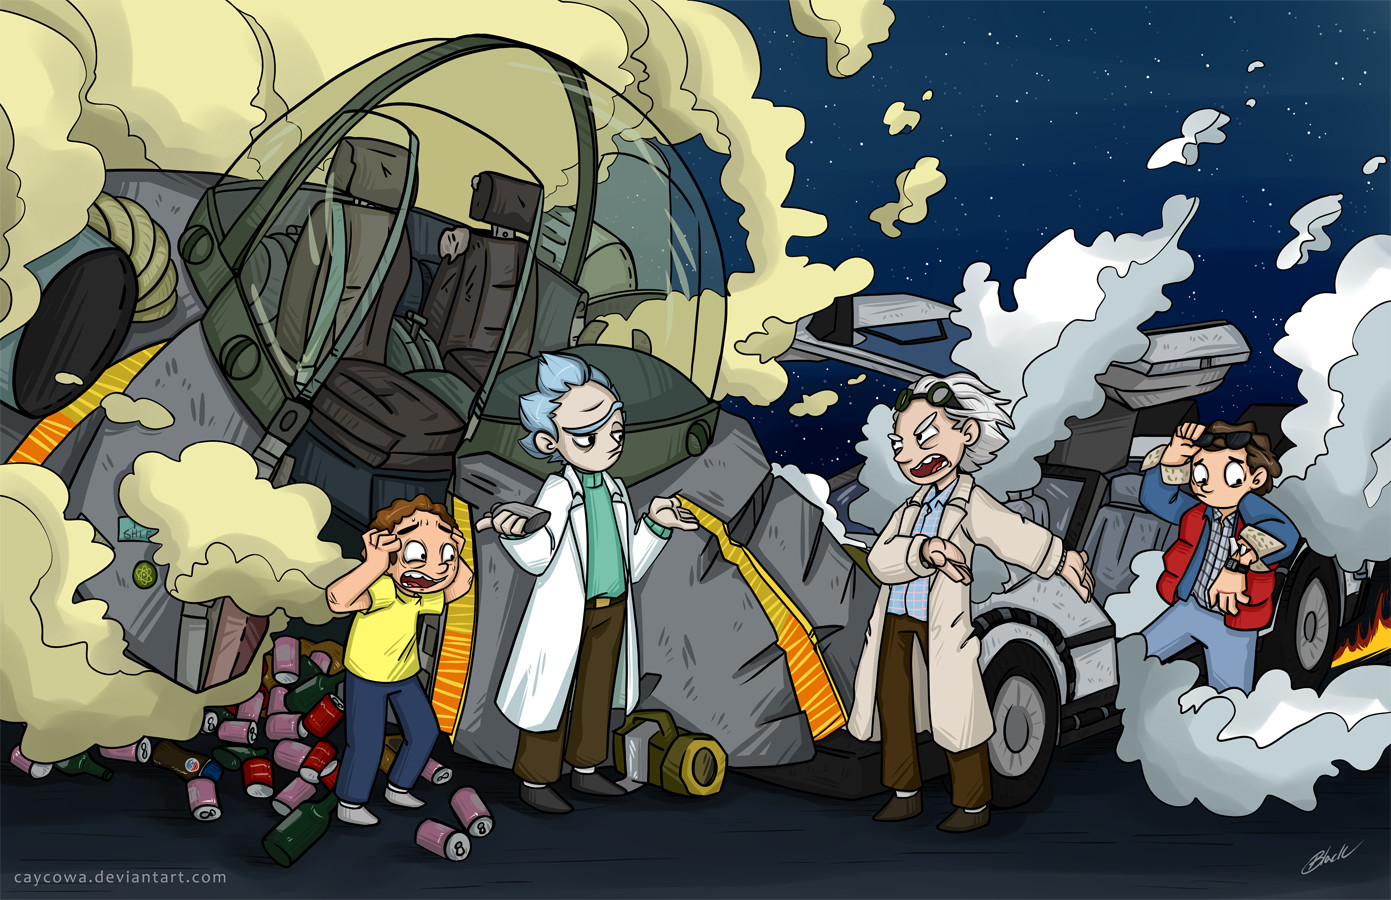 Rick And Morty By Caycowa On DeviantArt